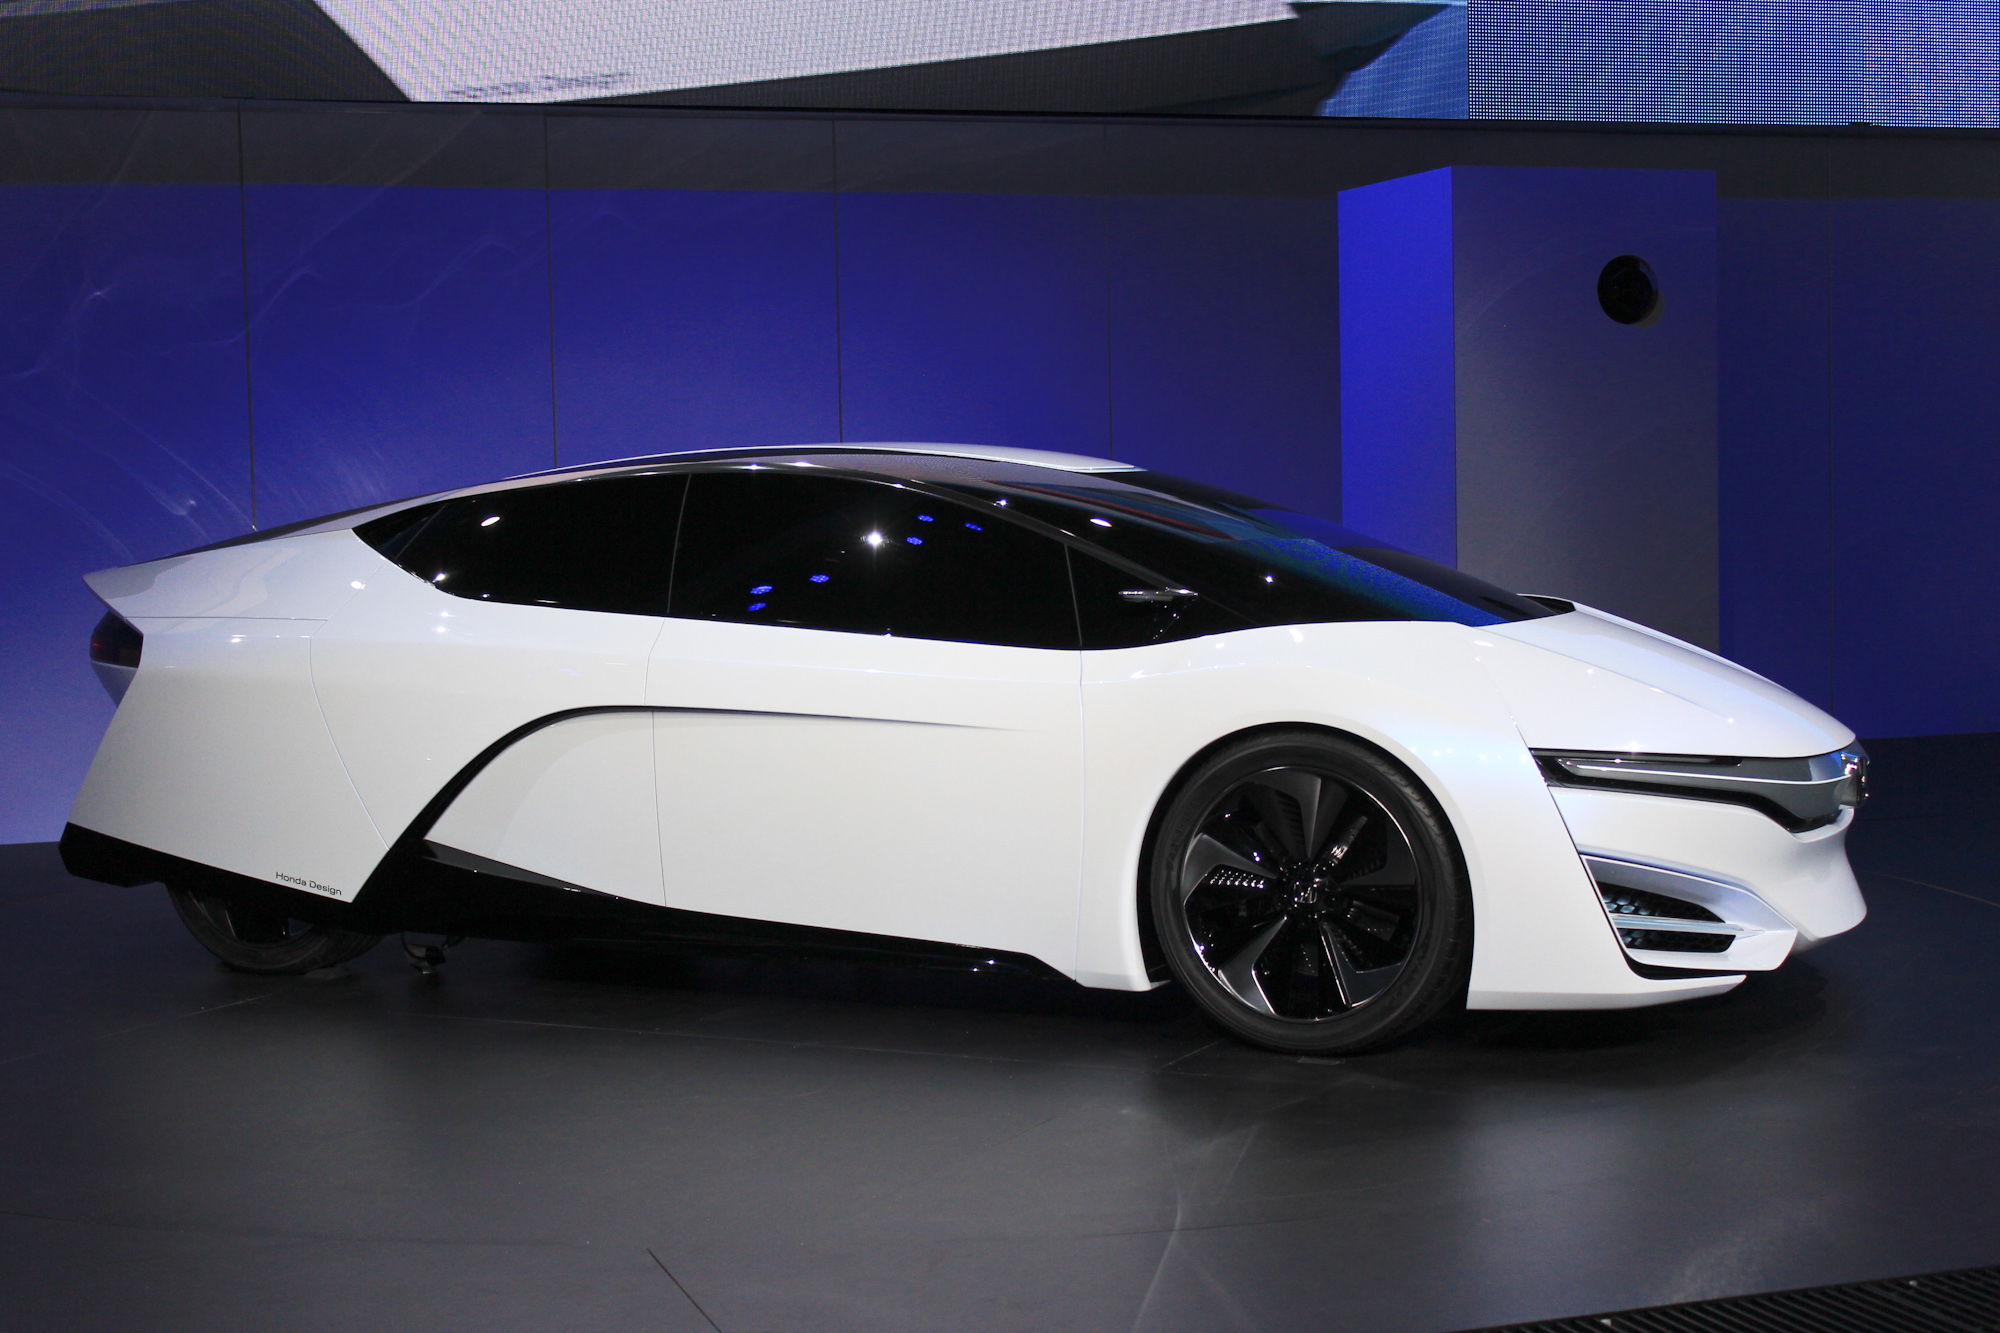 honda and hybrid electric vehicles 2 essay Free essay: honda and hybrid electric vehicles honda was founded in hamamatsu, japan, by soichiro honda in 1946 as the honda technical research institute.